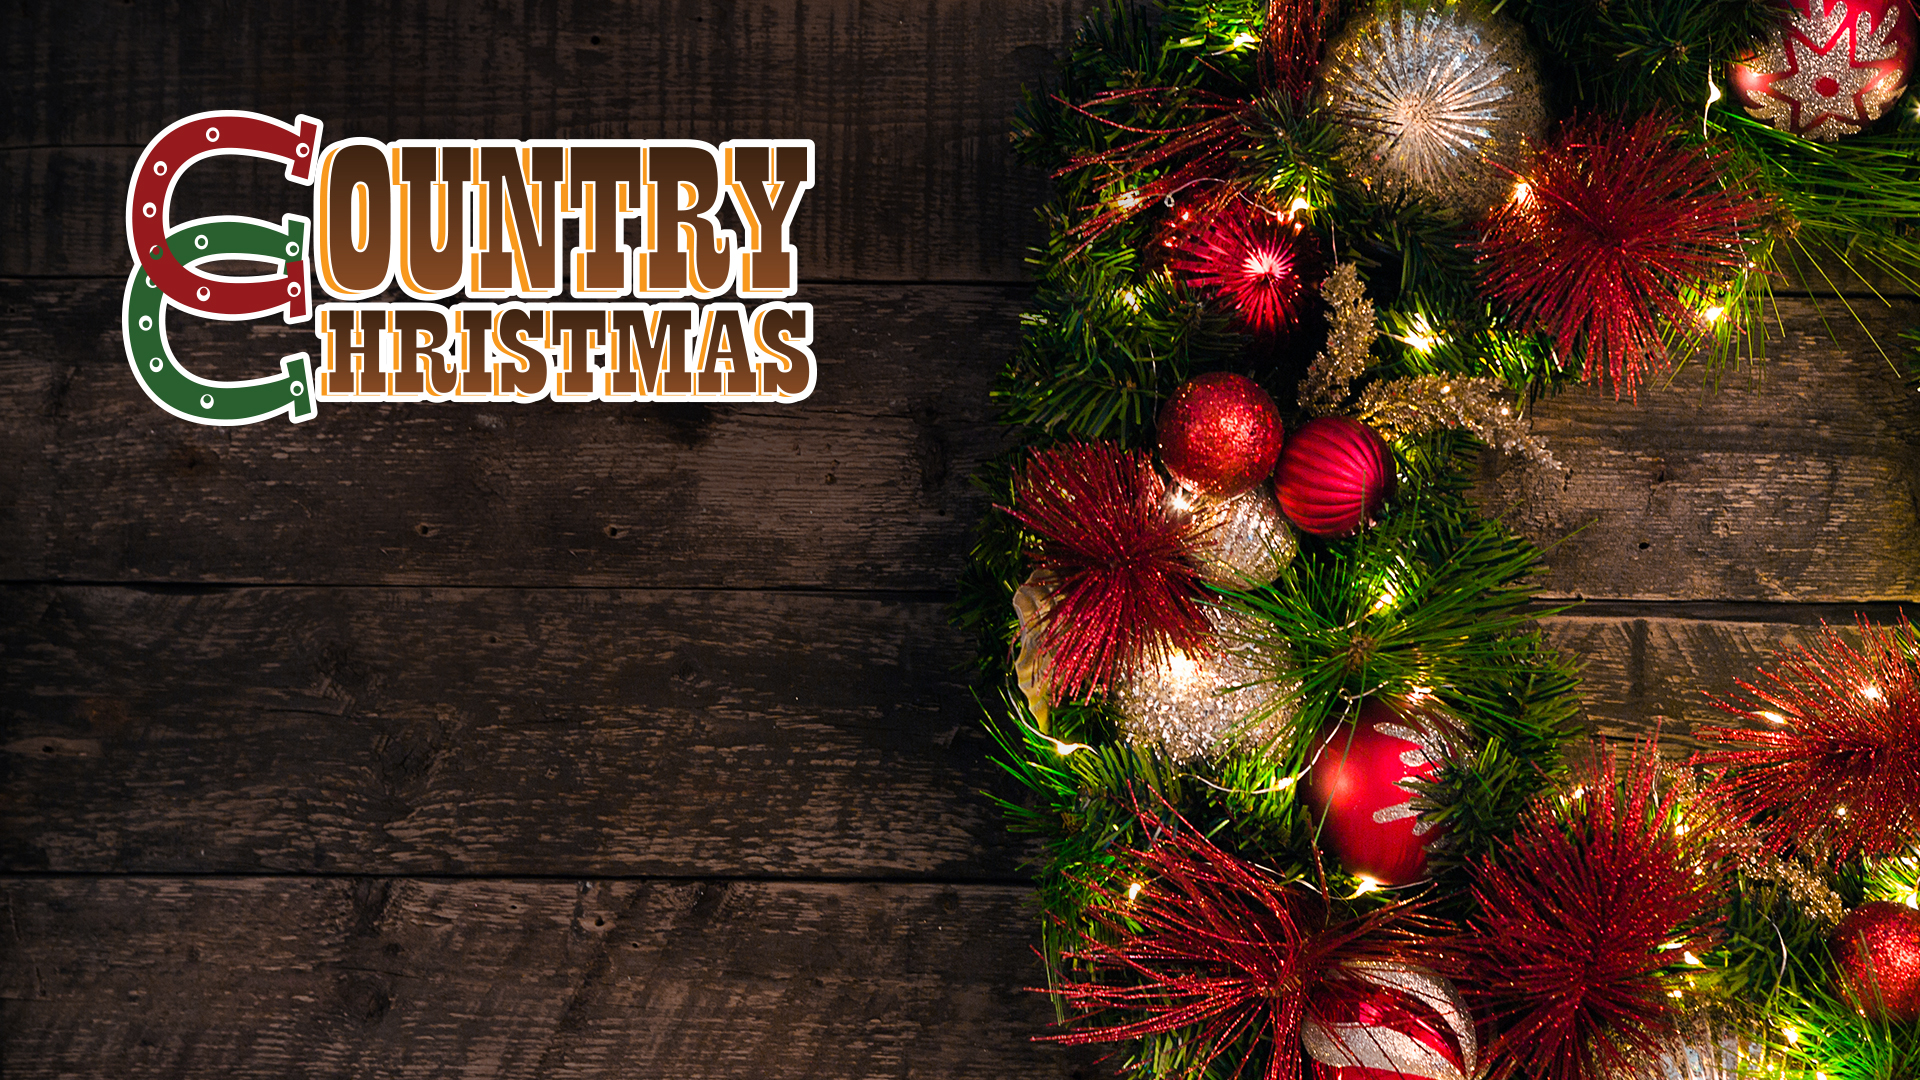 Country Christmas holiday music channels